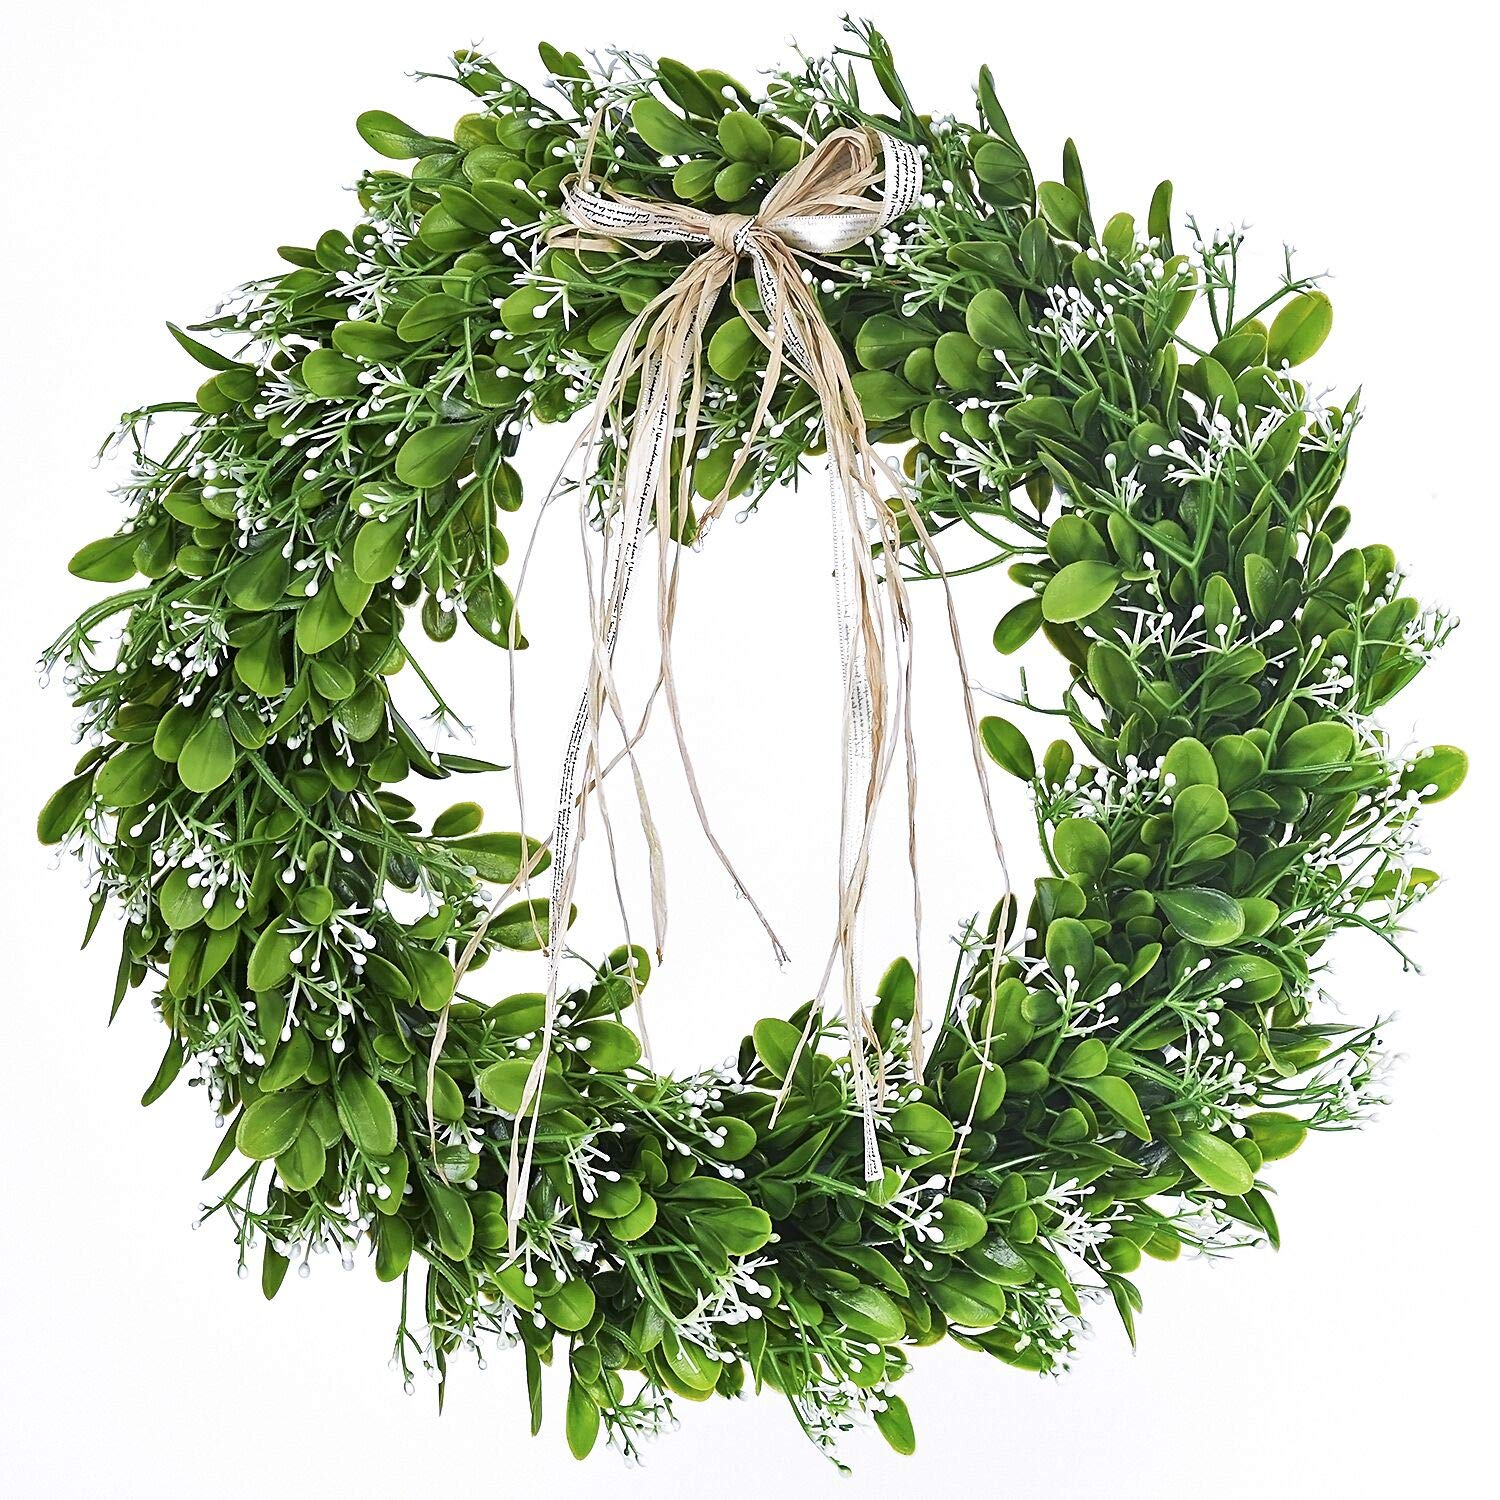 16 inch Artificial Green Leaf Wreath with Bow Spring Front Door Wreath St Patricks Day Wreaths for Front Door by Woooow